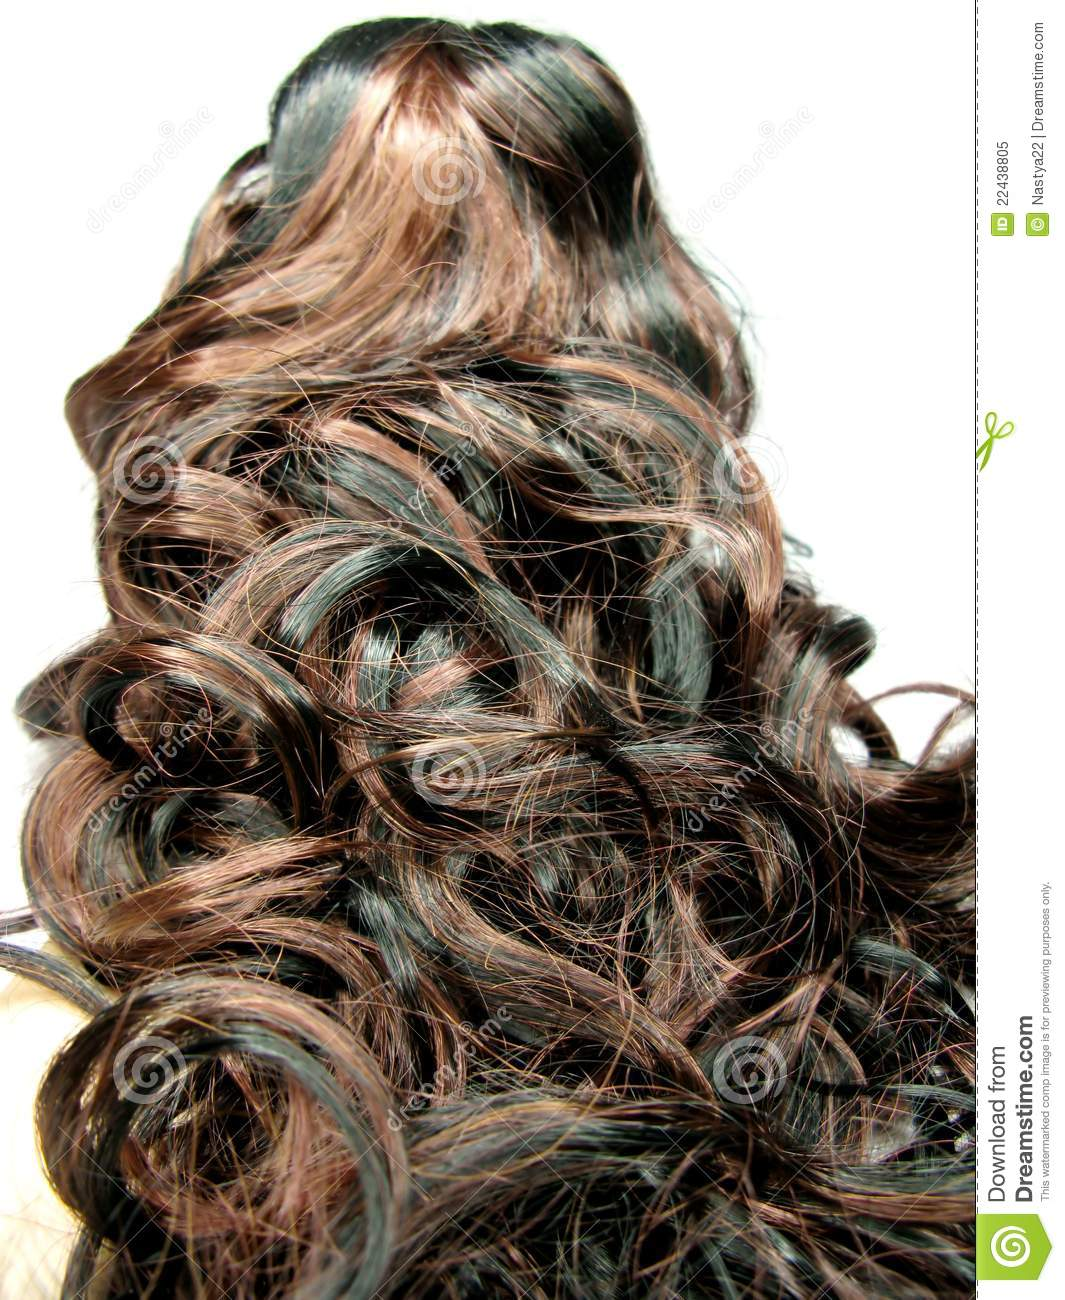 Curly Highlight Hair Texture Background Stock Image Image Of